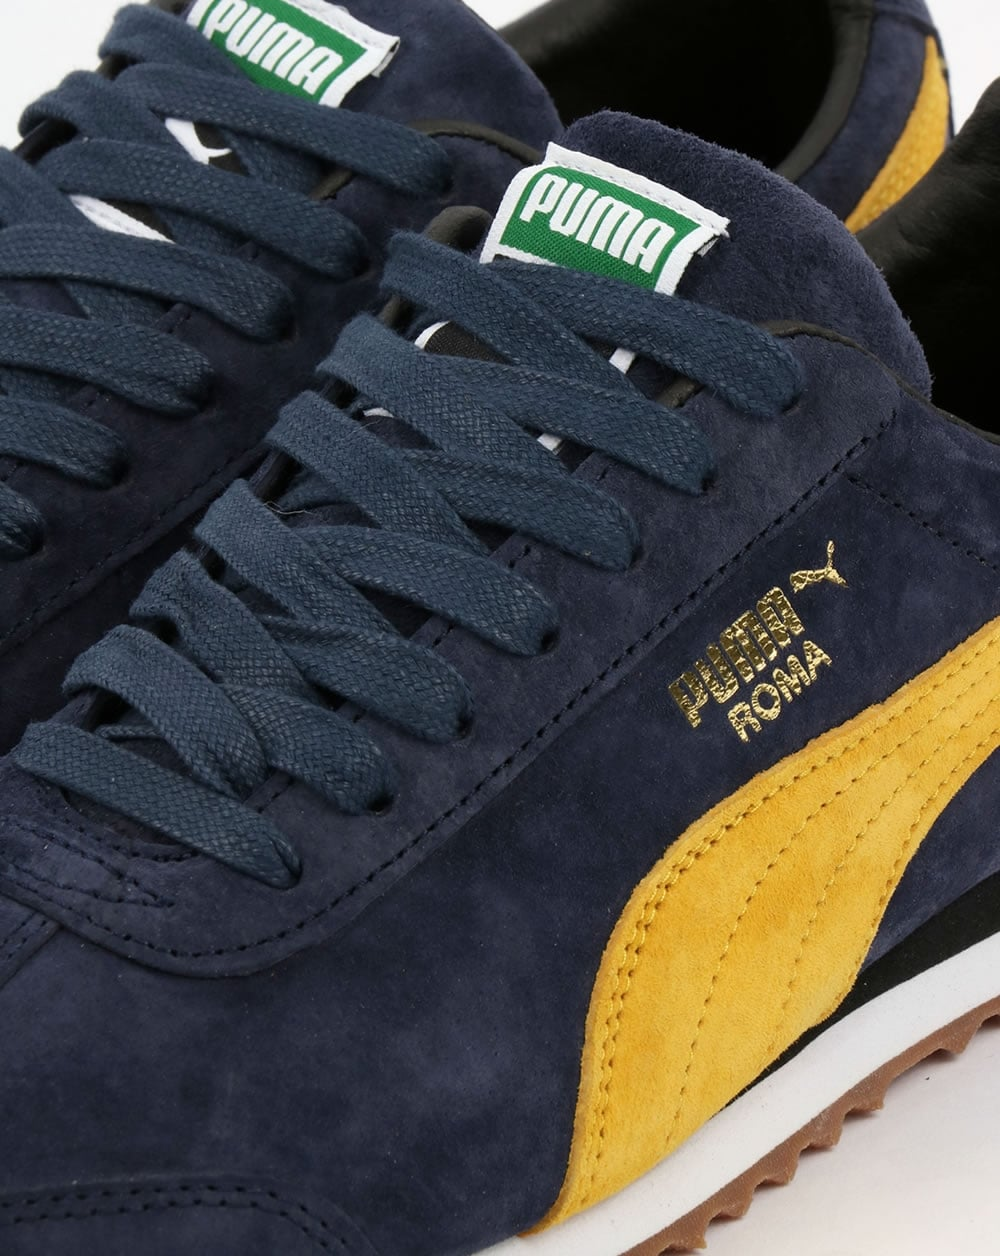 Puma Puma Roma Trainers Navy Yellow d3af838066d1